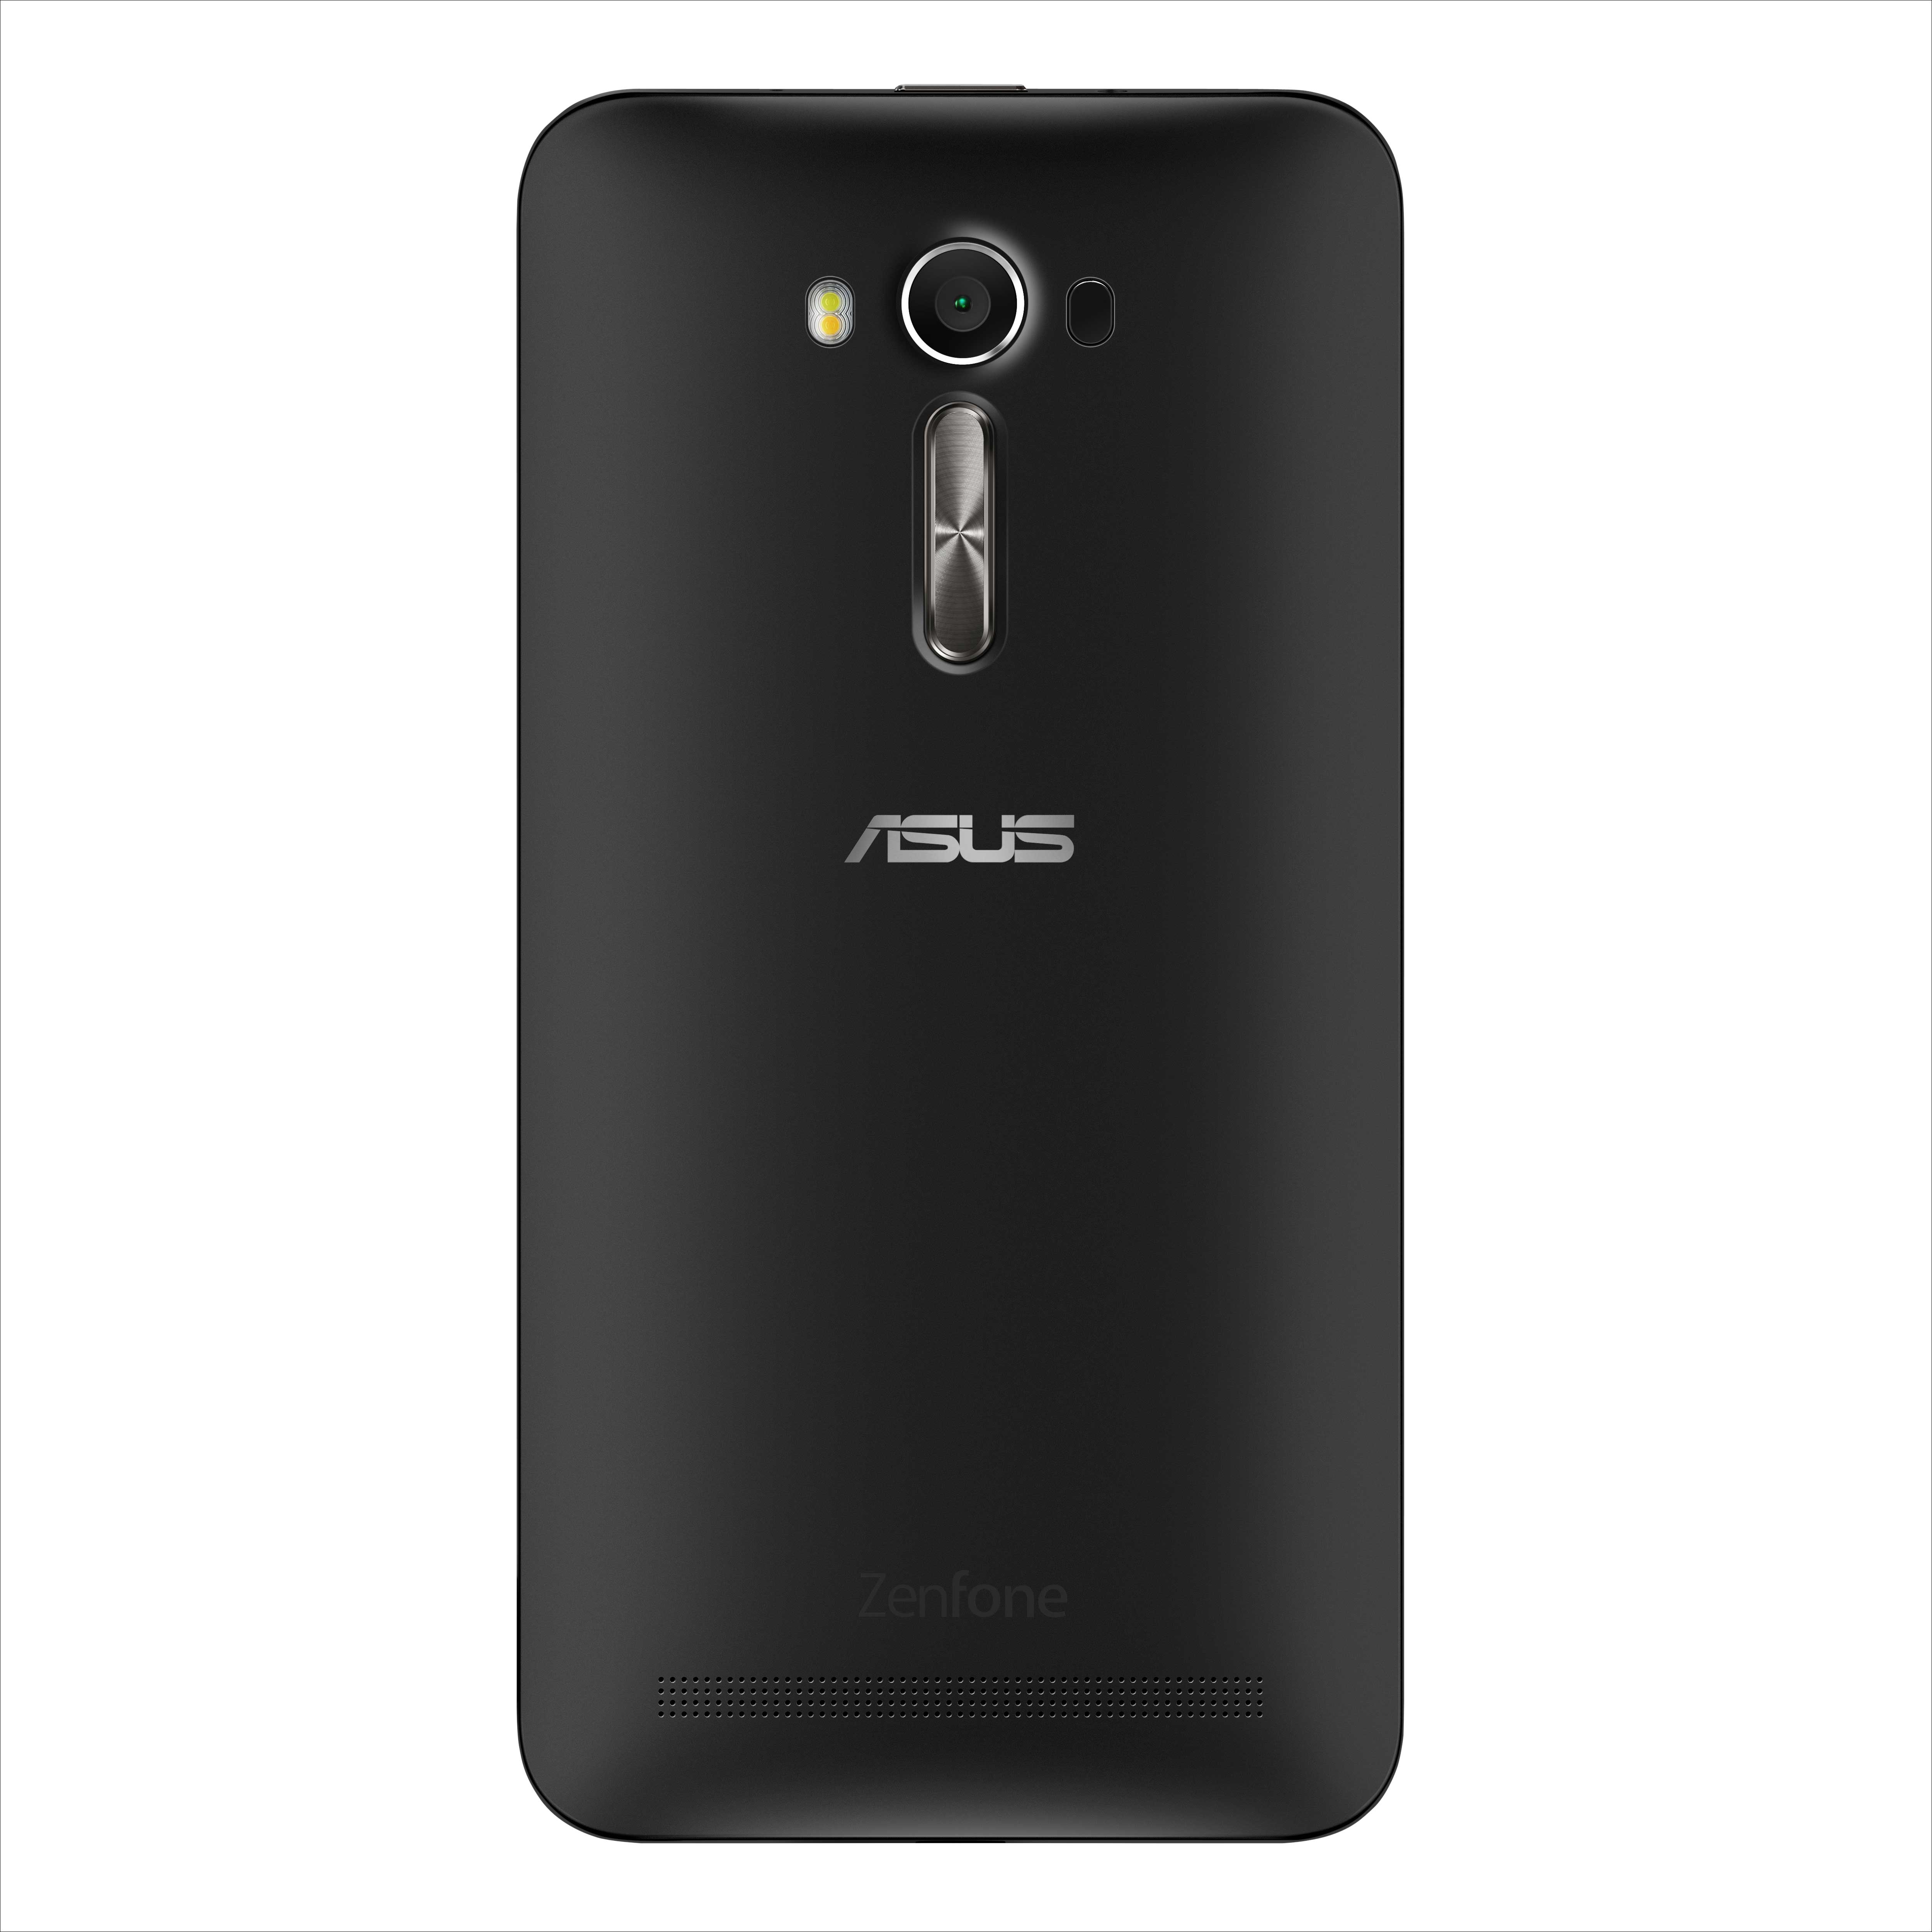 ASUS Zenfone 2 Laser Review: Affordable Swag